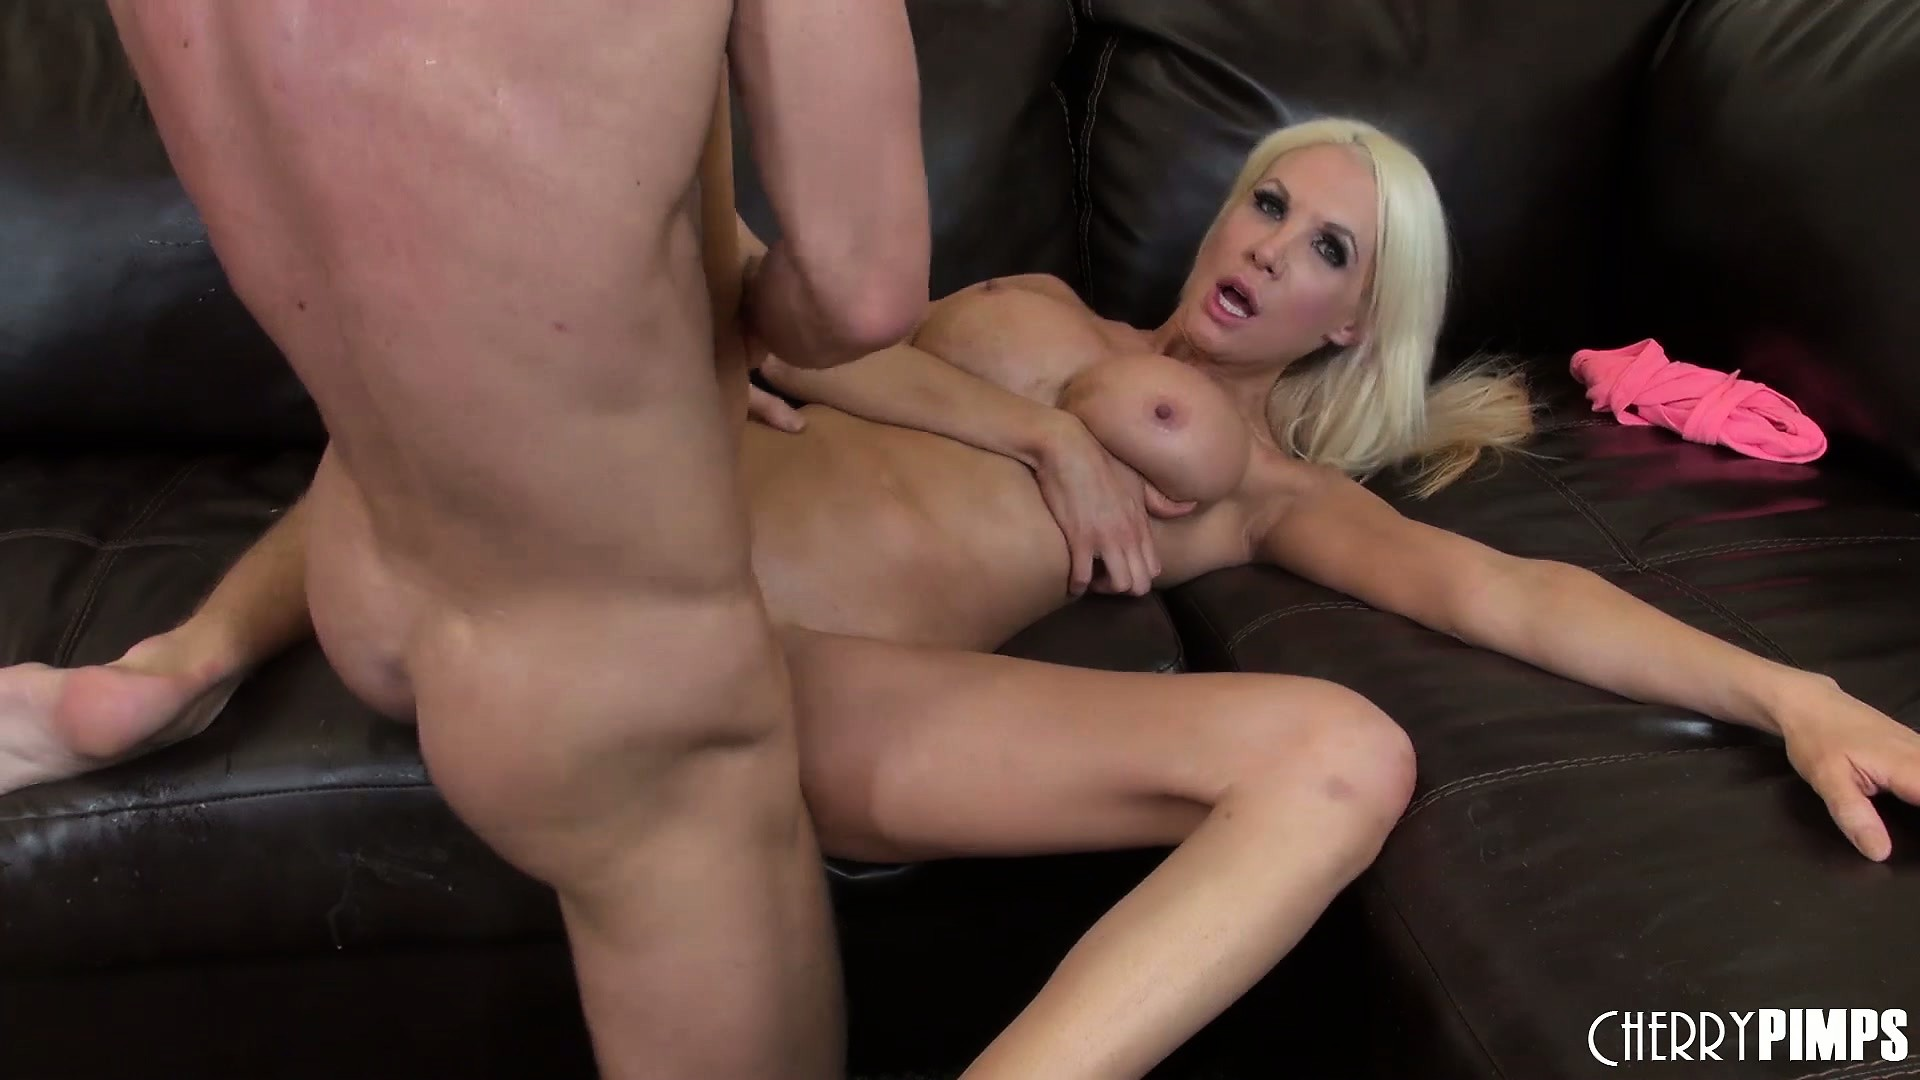 Porno Video of Holly Price Pays The Price But Gets The Creamy Man Juice Reward